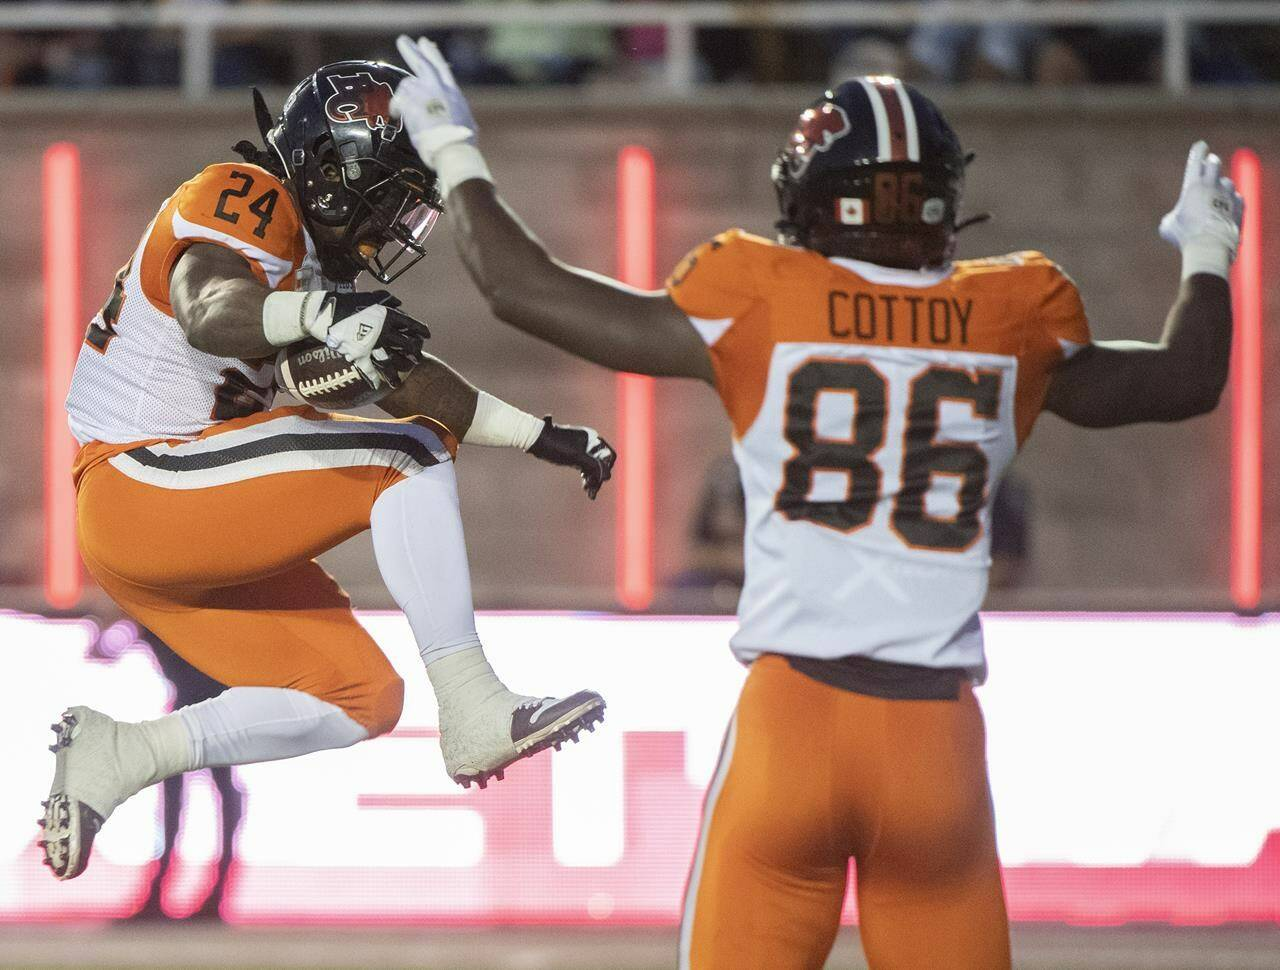 B.C. Lions James Butler (24) runs in for a touchdown during first half CFL football action against the Montreal Alouettes in Montreal, Saturday, September 18, 2021. THE CANADIAN PRESS/Graham Hughes